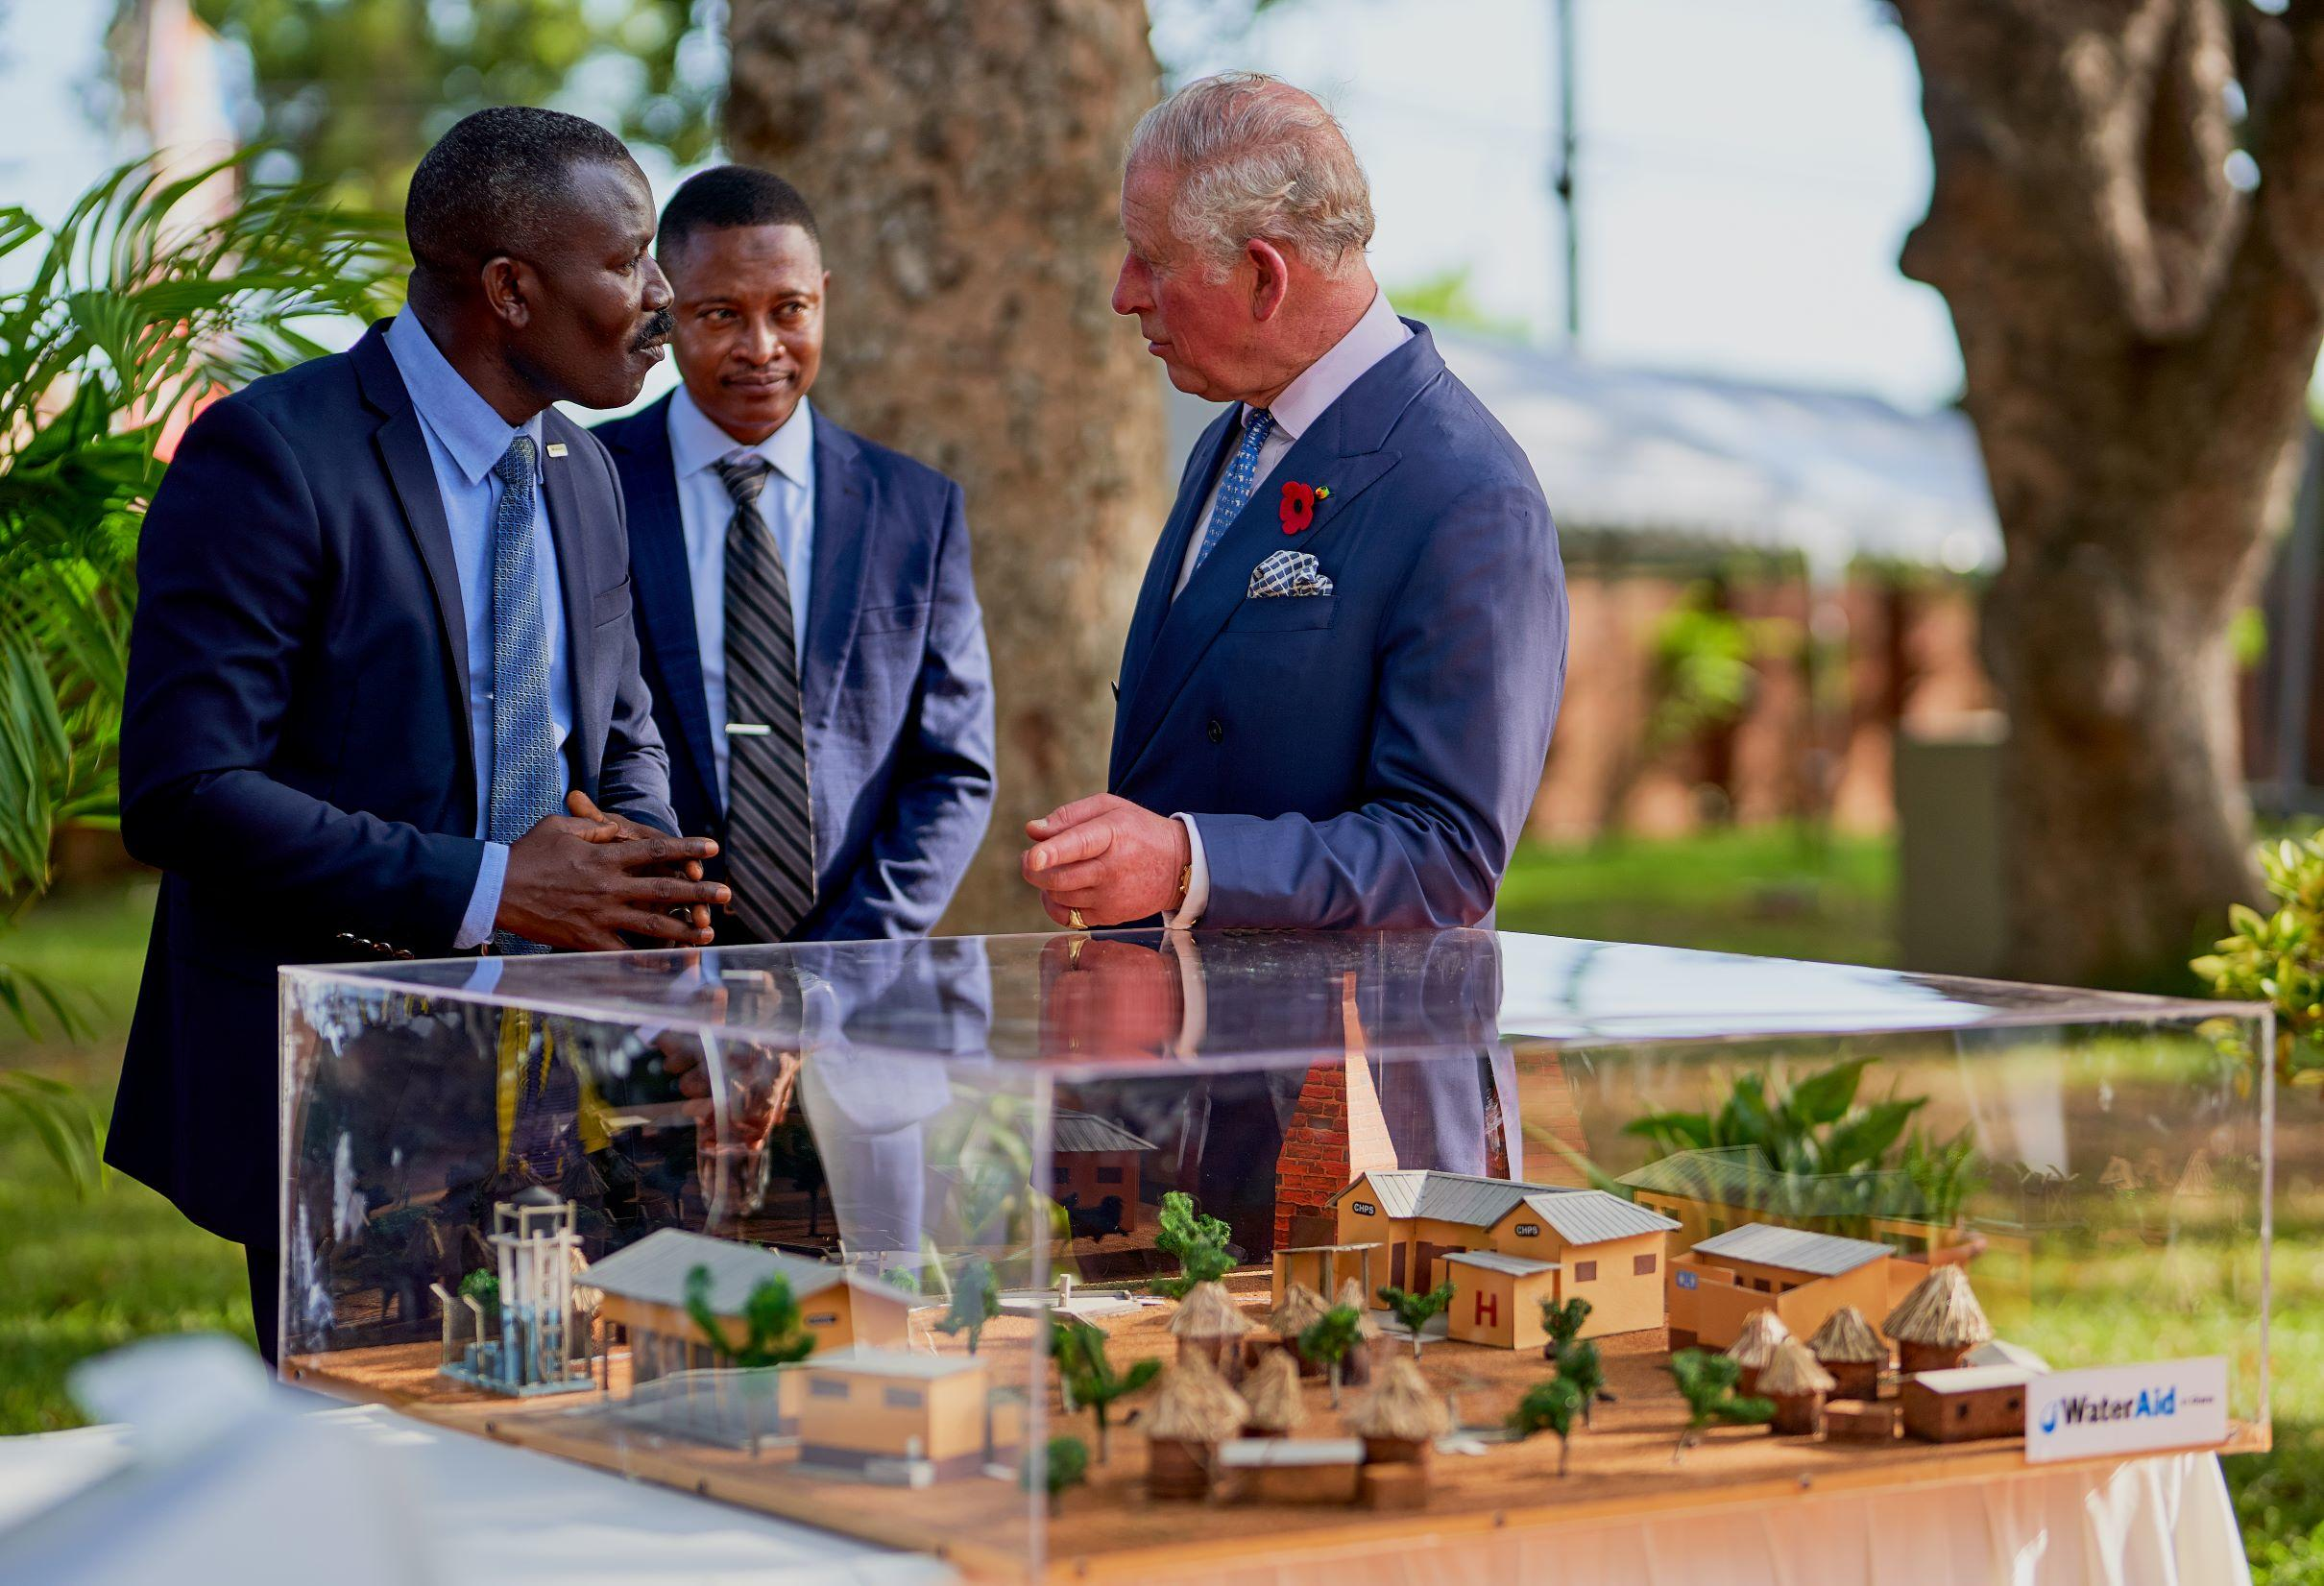 HRH The Prince of Wales listens as Sampson Tettey (far left) and Abdul-Nashiru Mohammed (centre) of WaterAid Ghana explain a model of water and sanitation work in a village, in Accra, Ghana, 5 Nov.